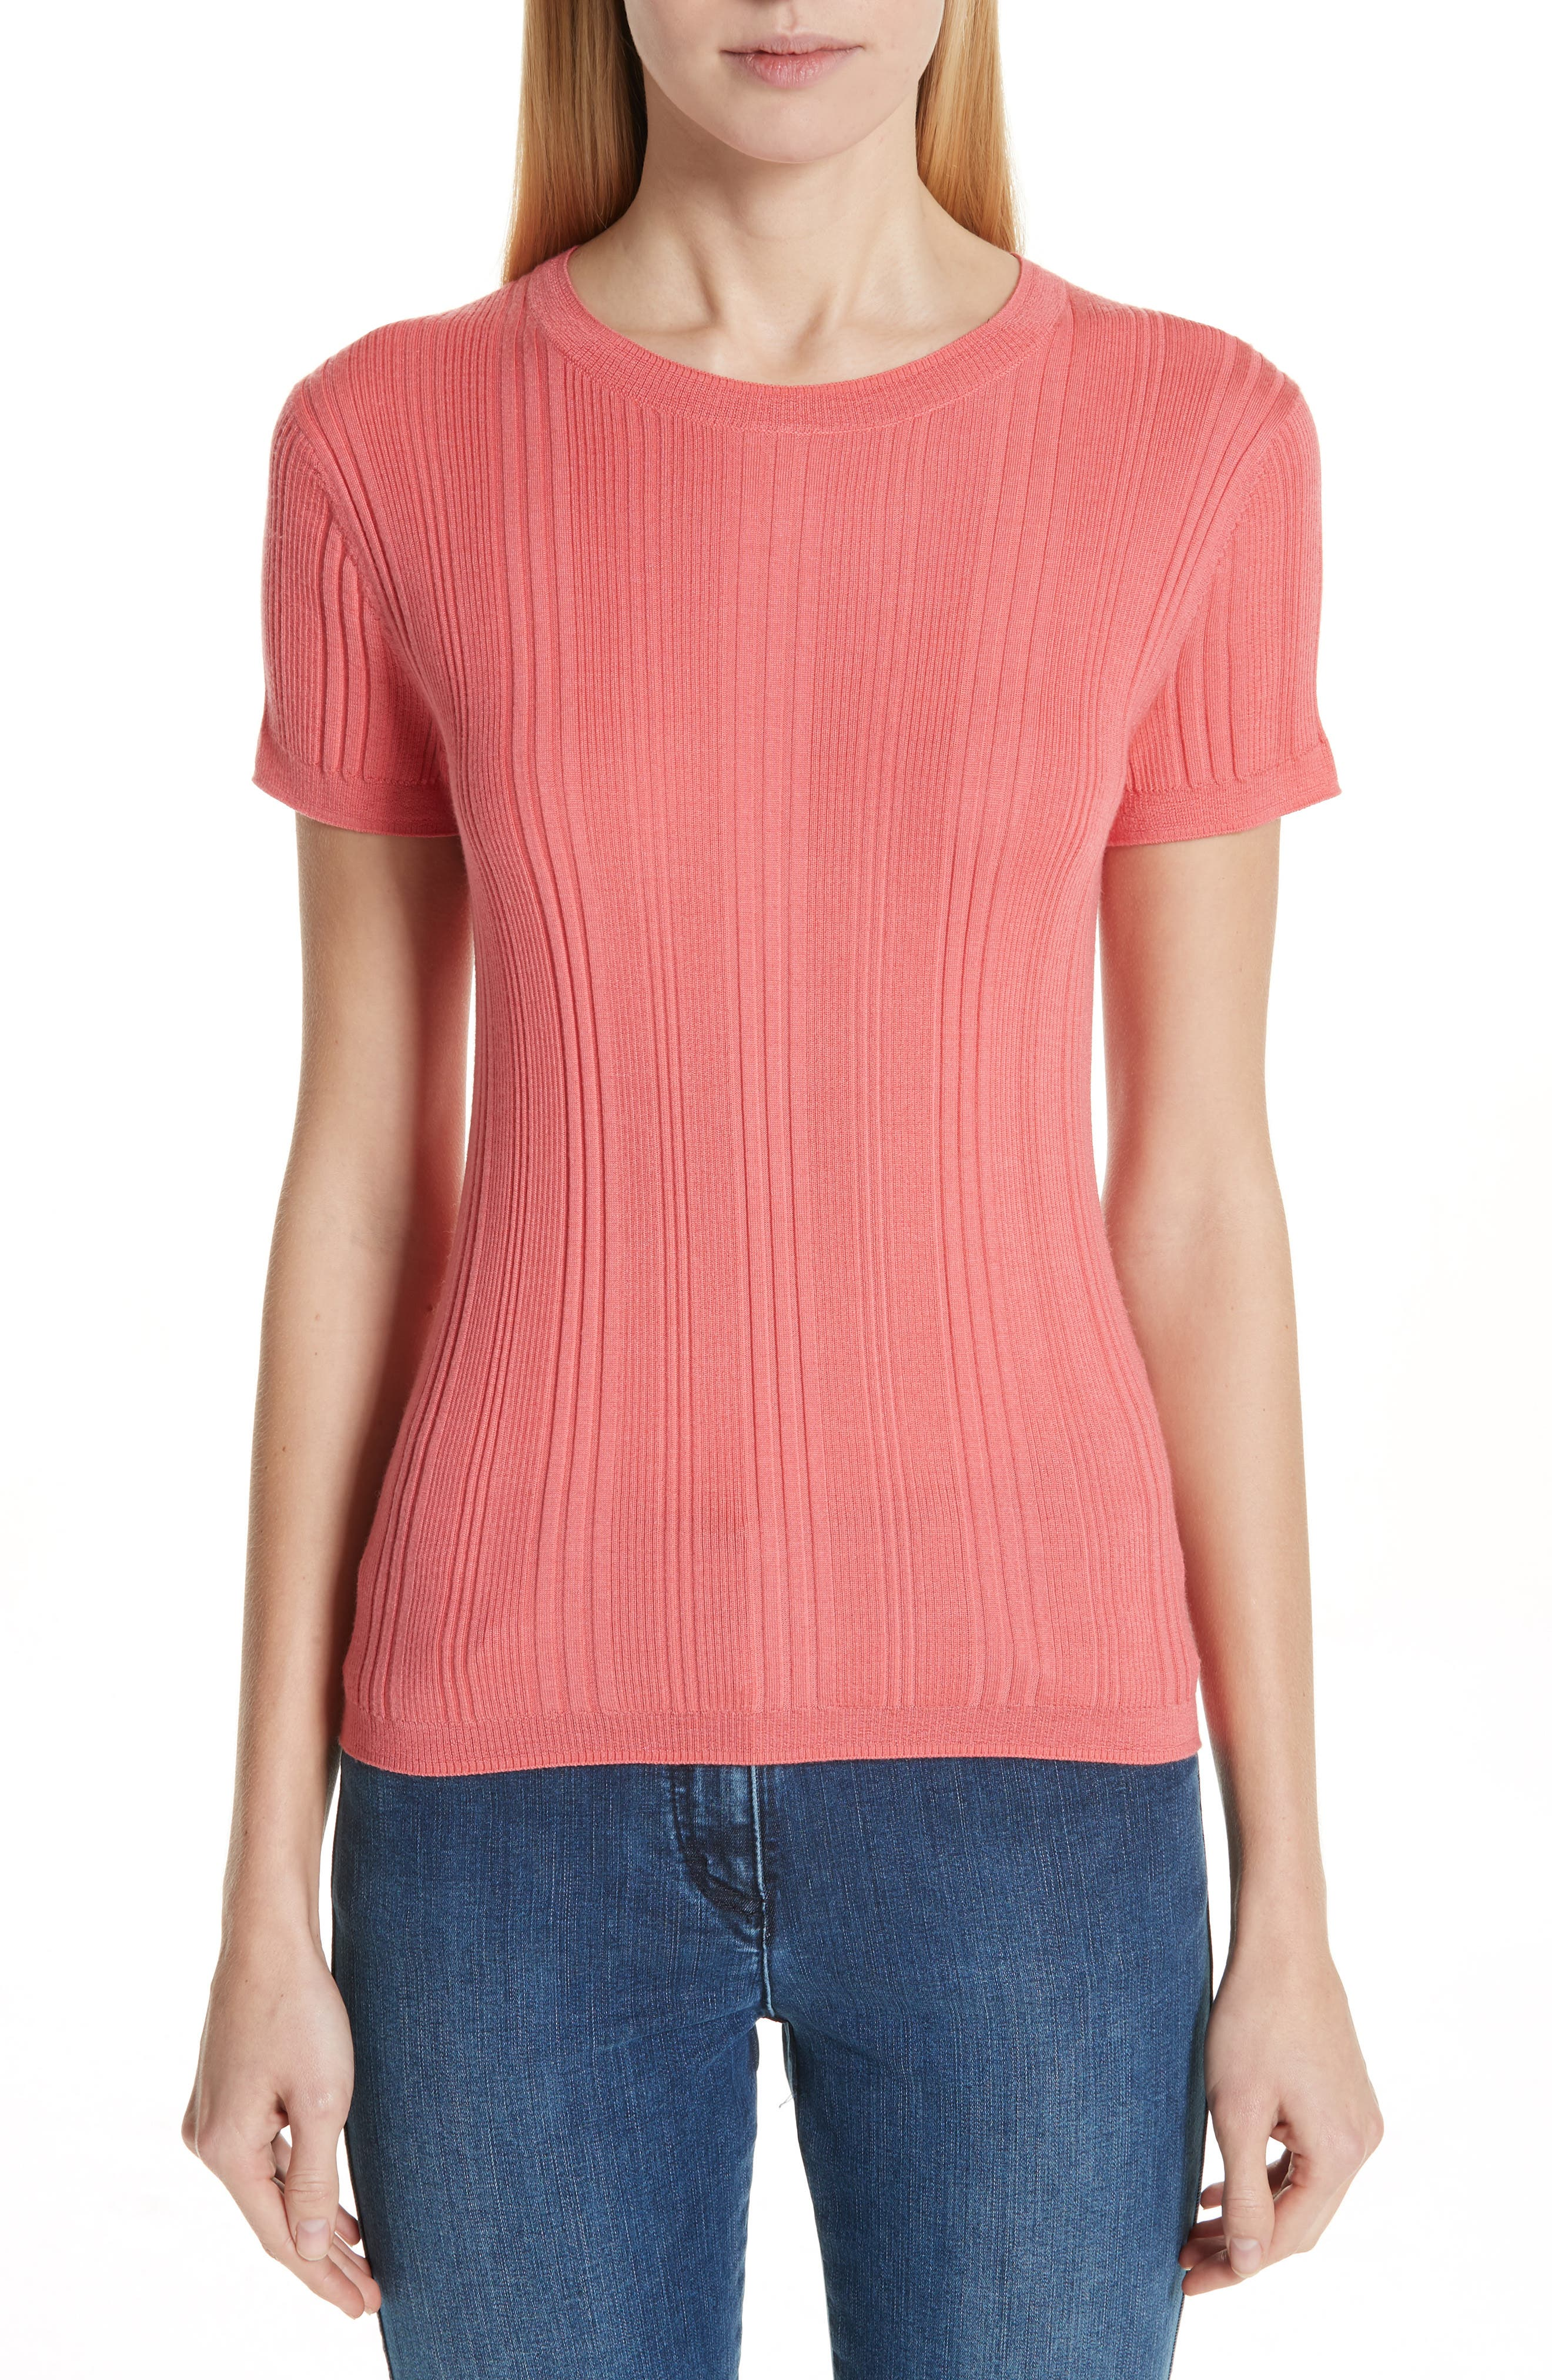 Superfine Variegated Rib Sweater, Main, color, CORAL